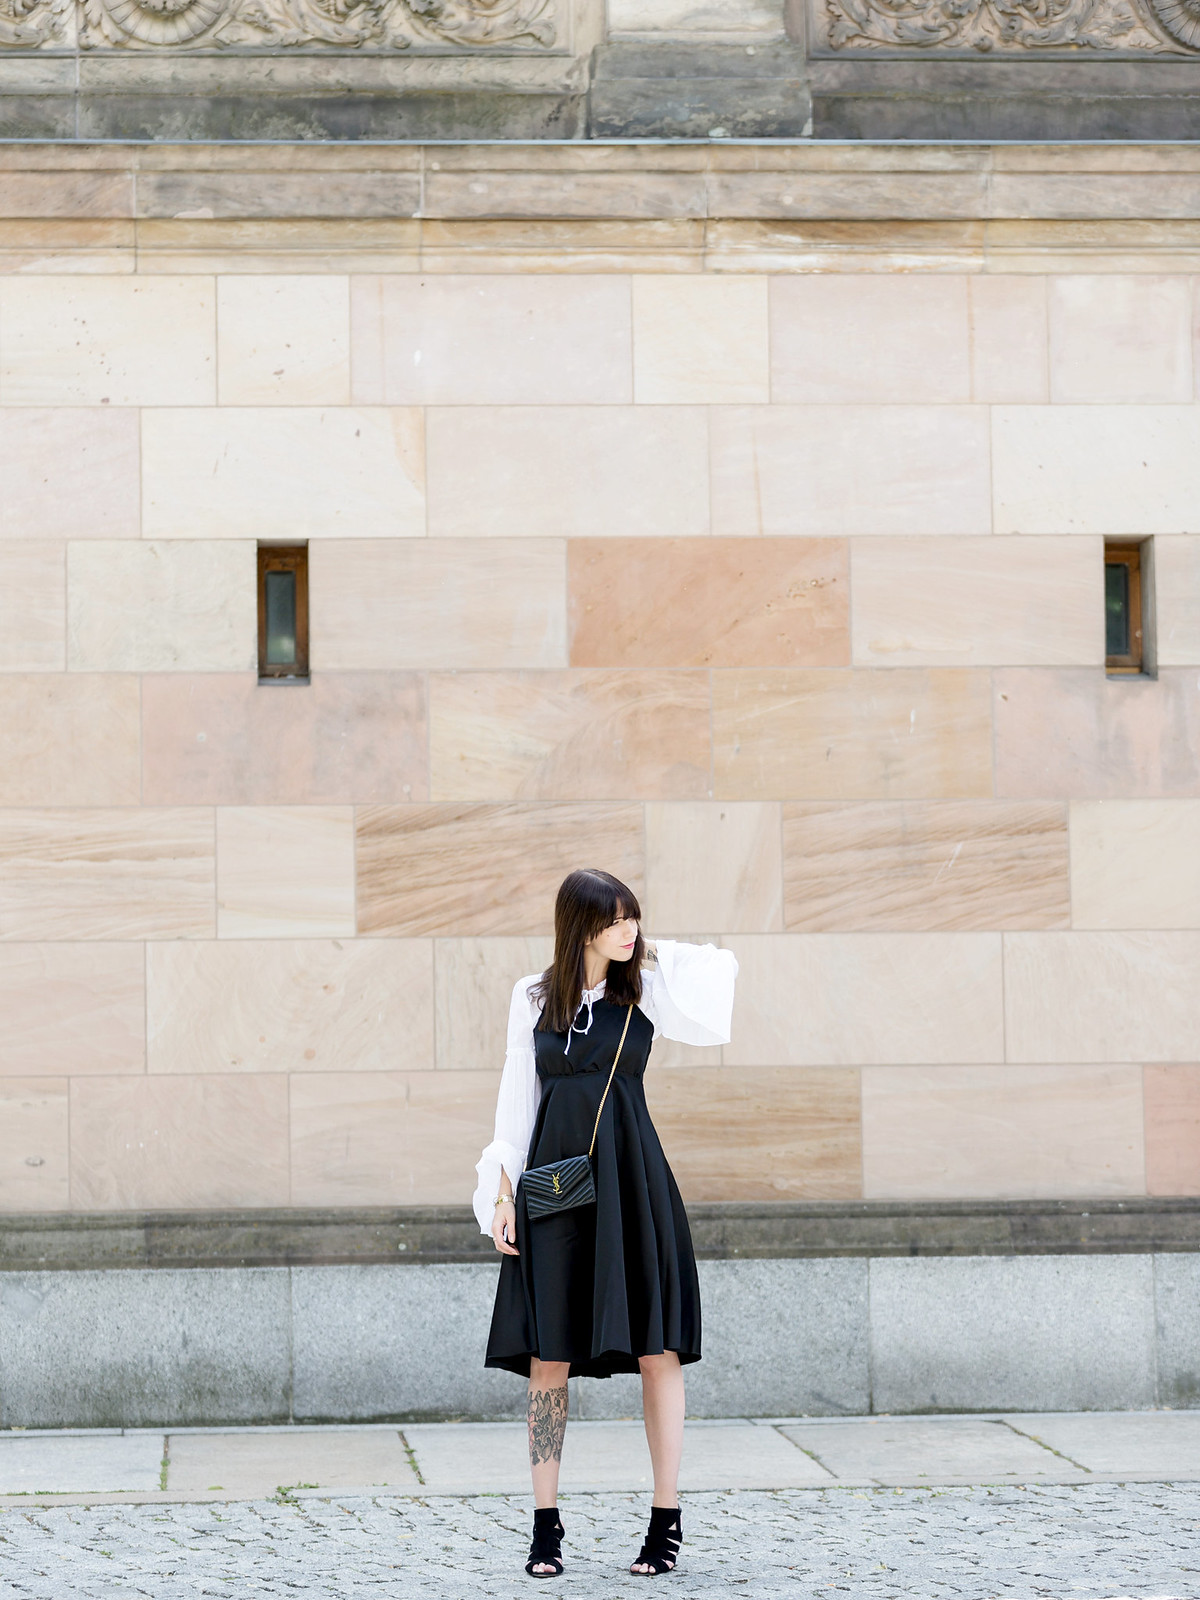 berlin museumsinsel black dress over white shirt chic ysl saint laurent mini bag pochette parisienne styling look blogger fashionblogger ootd lookbook black white rock stylish sexy parisienne cats & dogs fashionblogger ricarda schernus 6